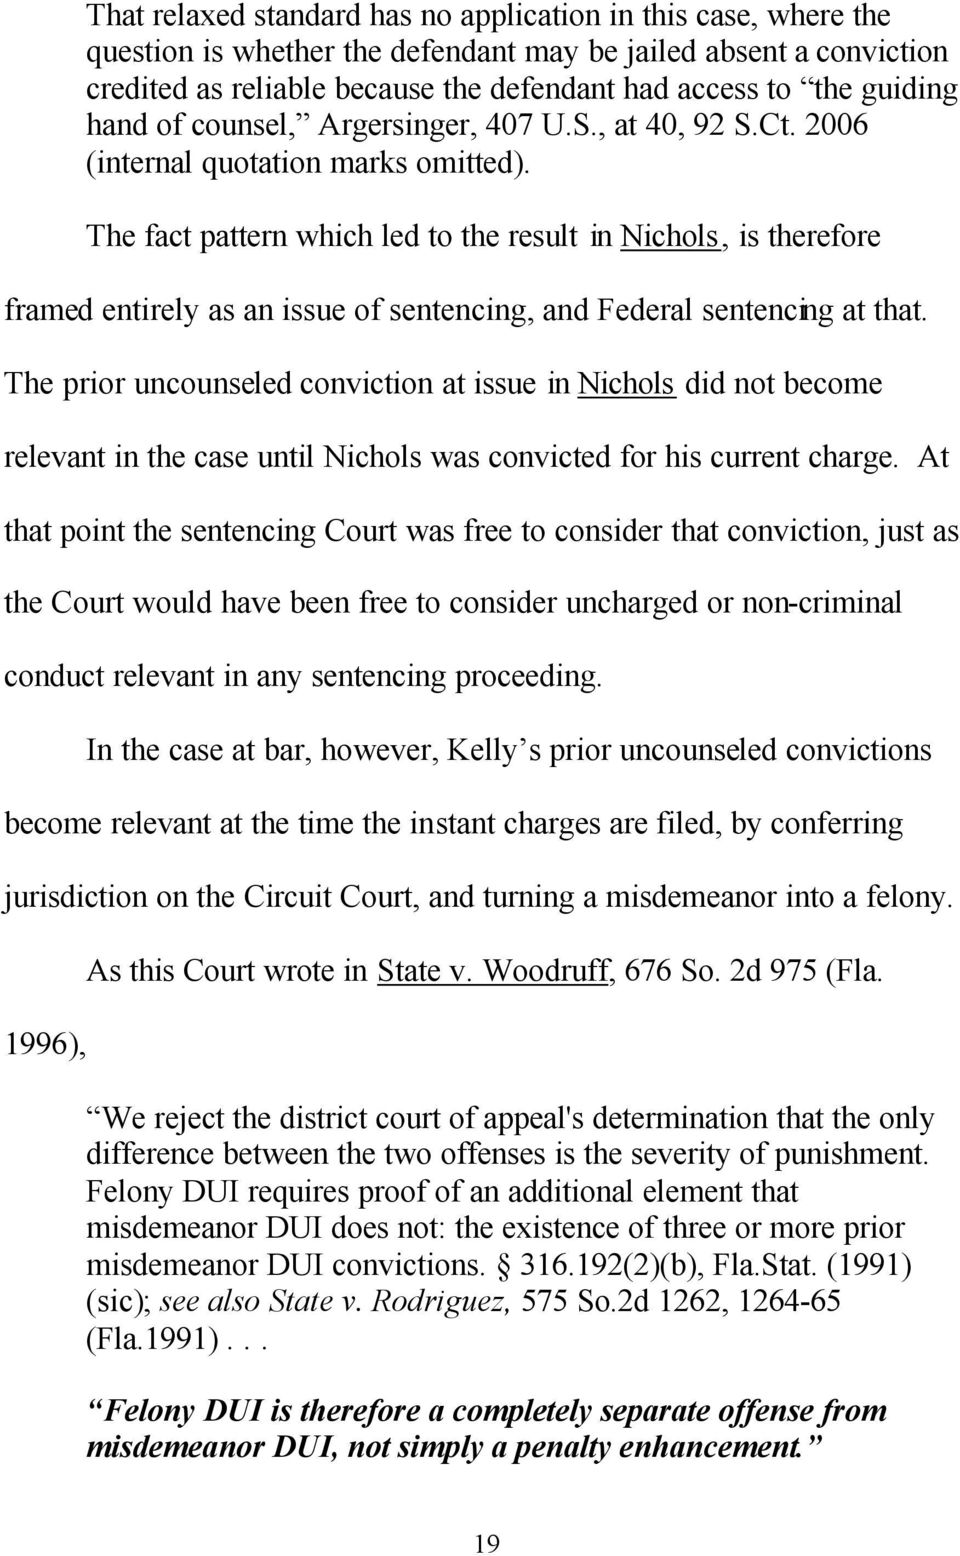 The fact pattern which led to the result in Nichols, is therefore framed entirely as an issue of sentencing, and Federal sentencing at that.